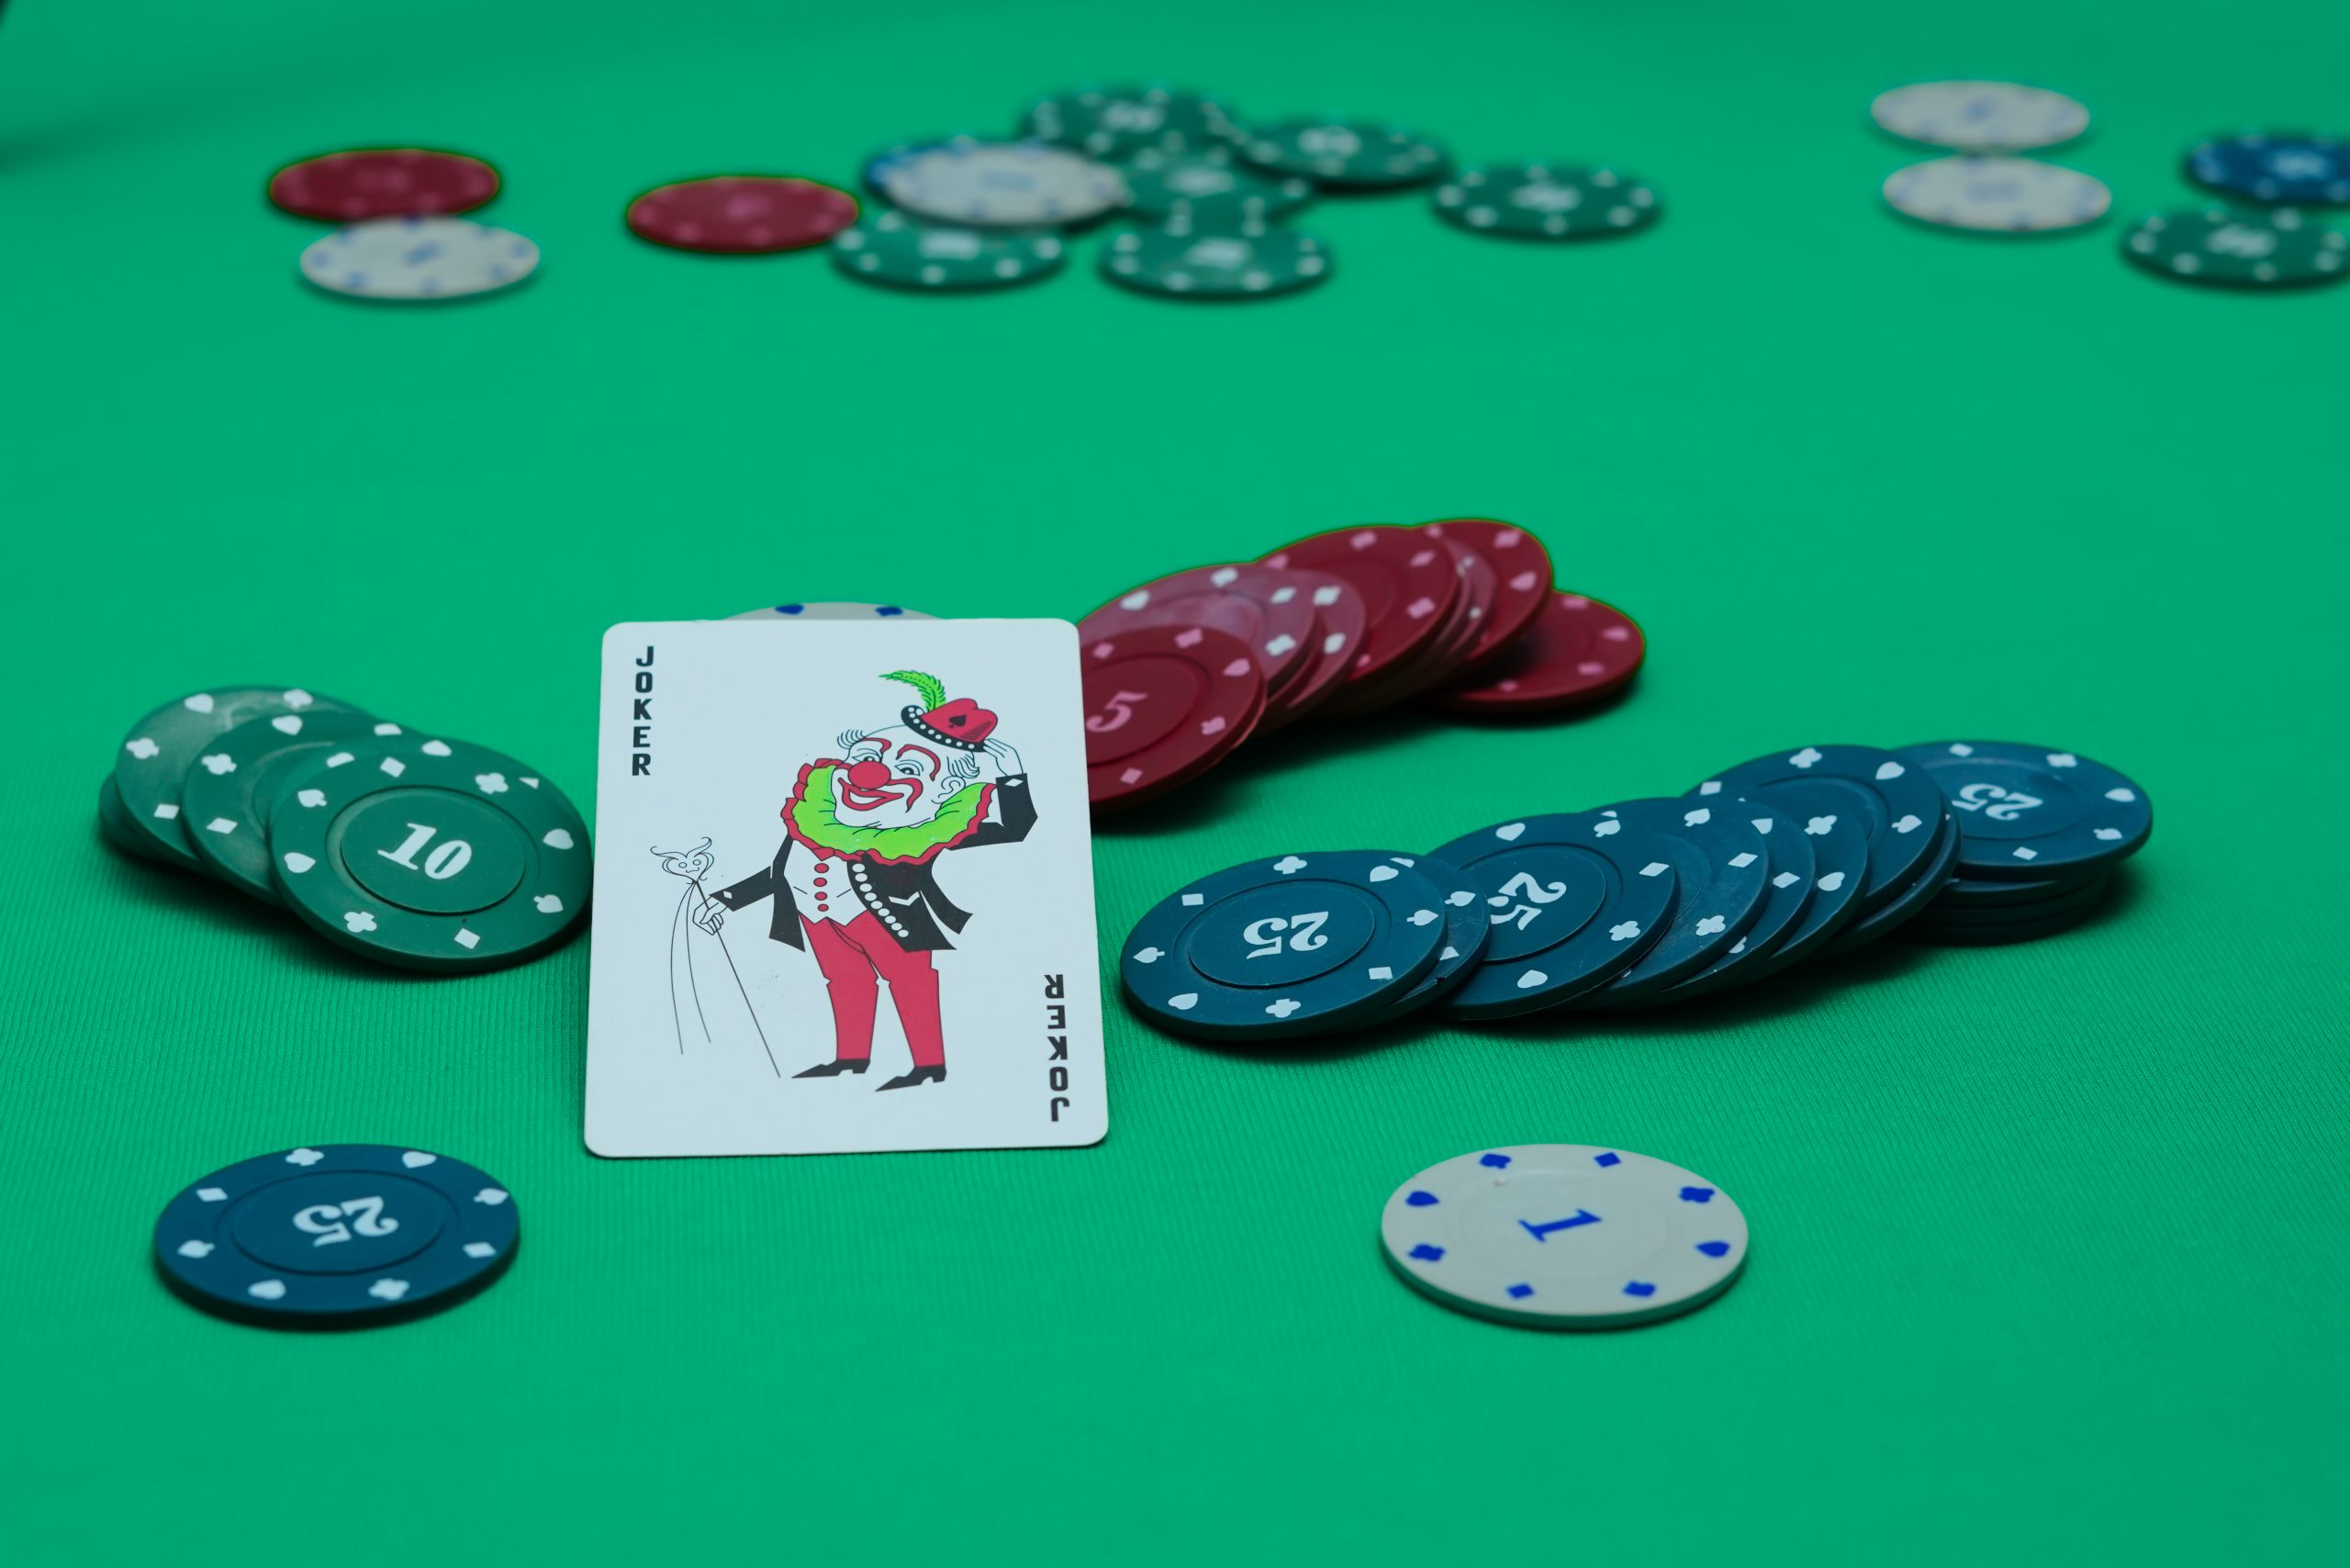 Joker card and poker coins on a table.